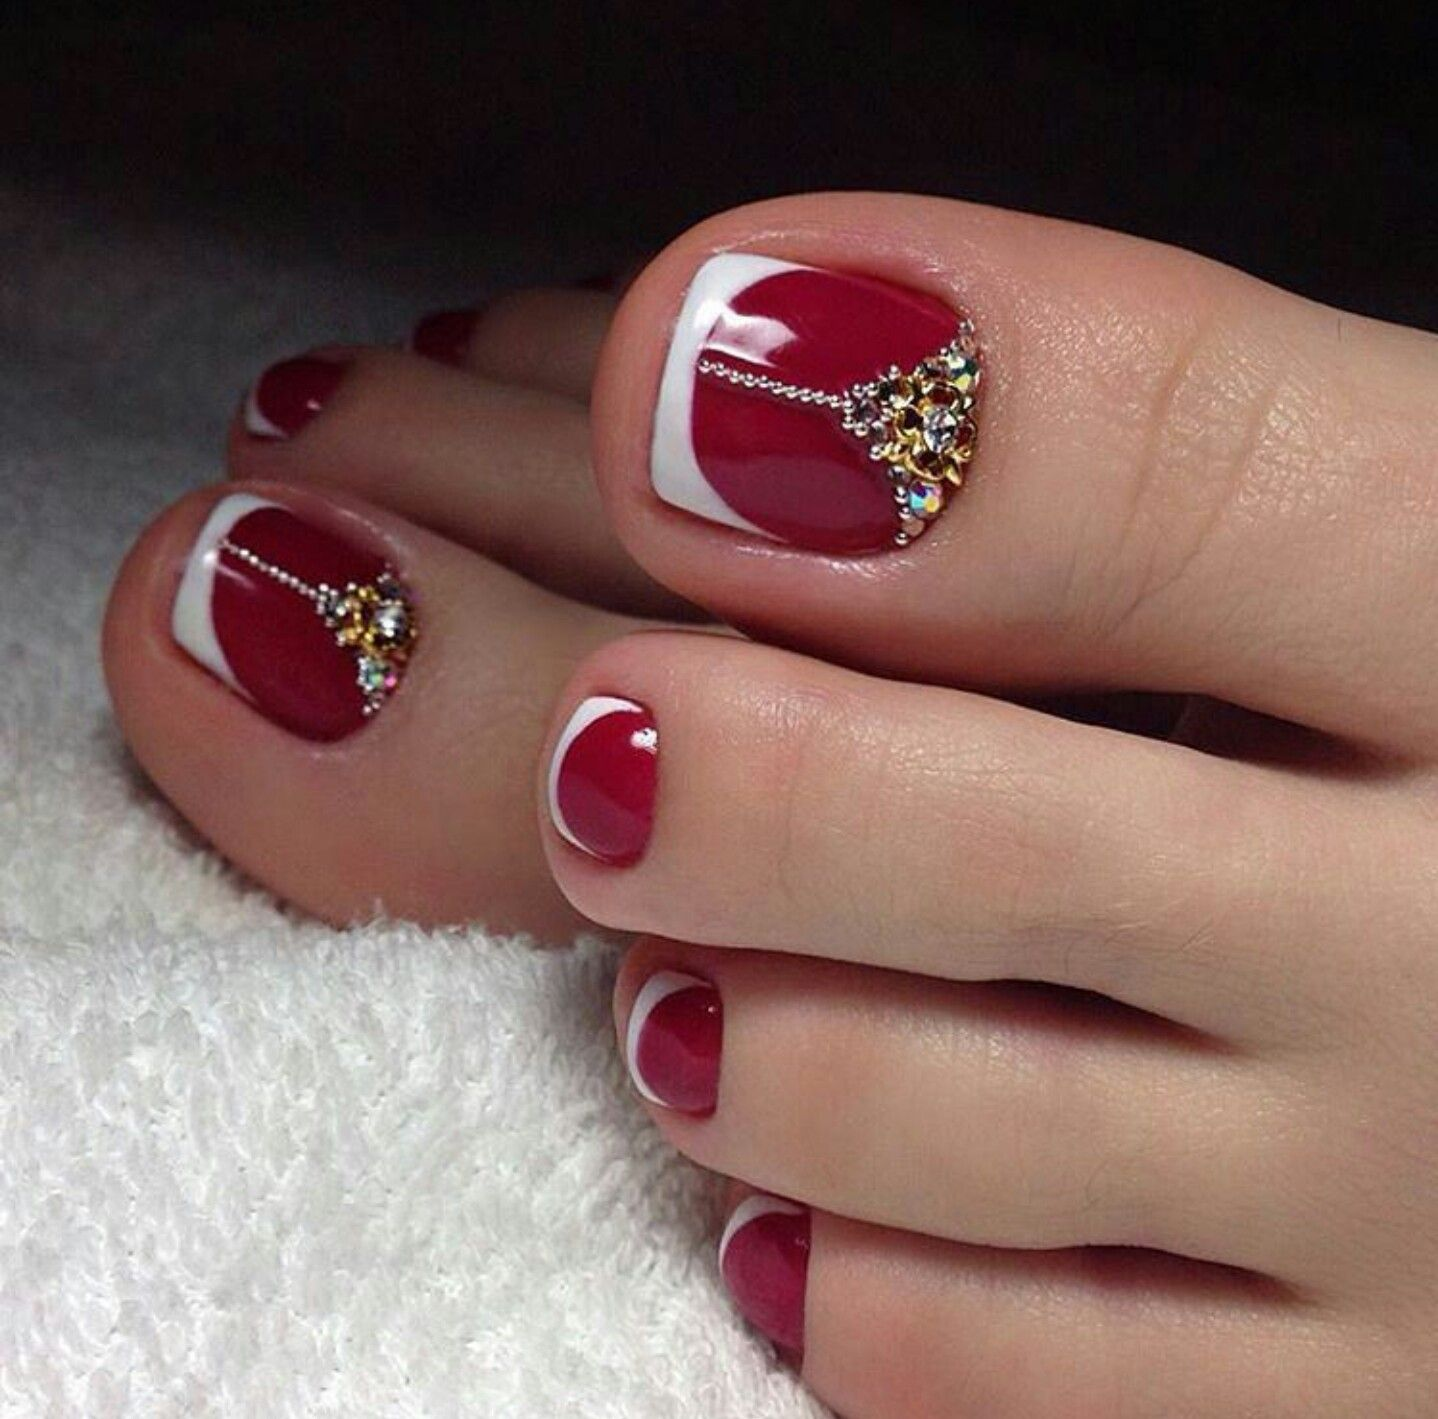 red toe nails with white french